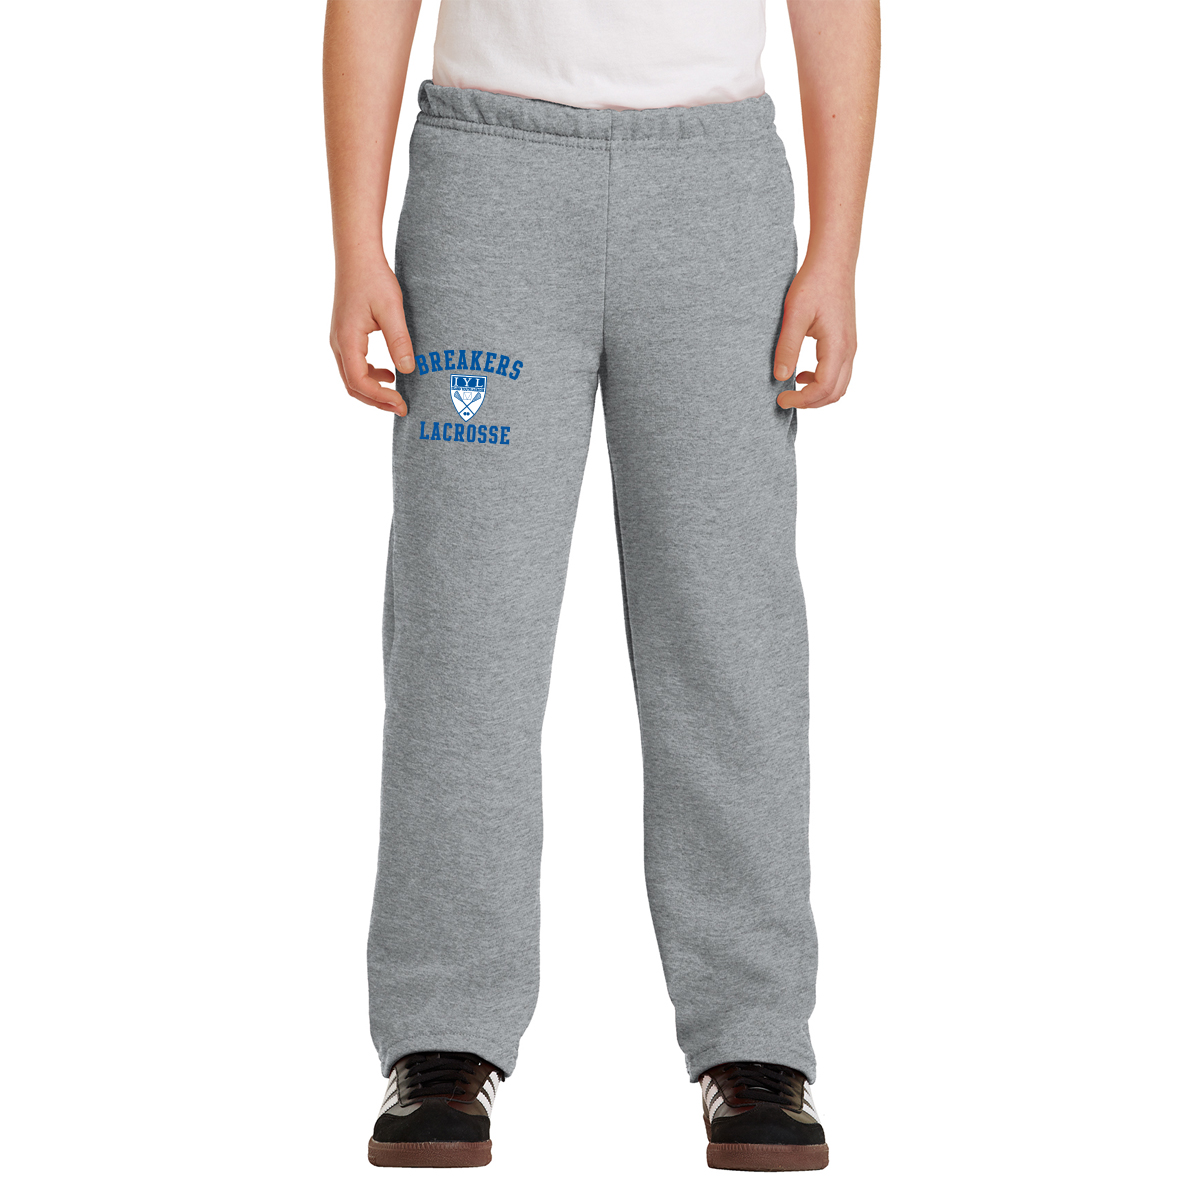 ISLAND YOUTH LACROSSE YOUTH SWEATPANTS